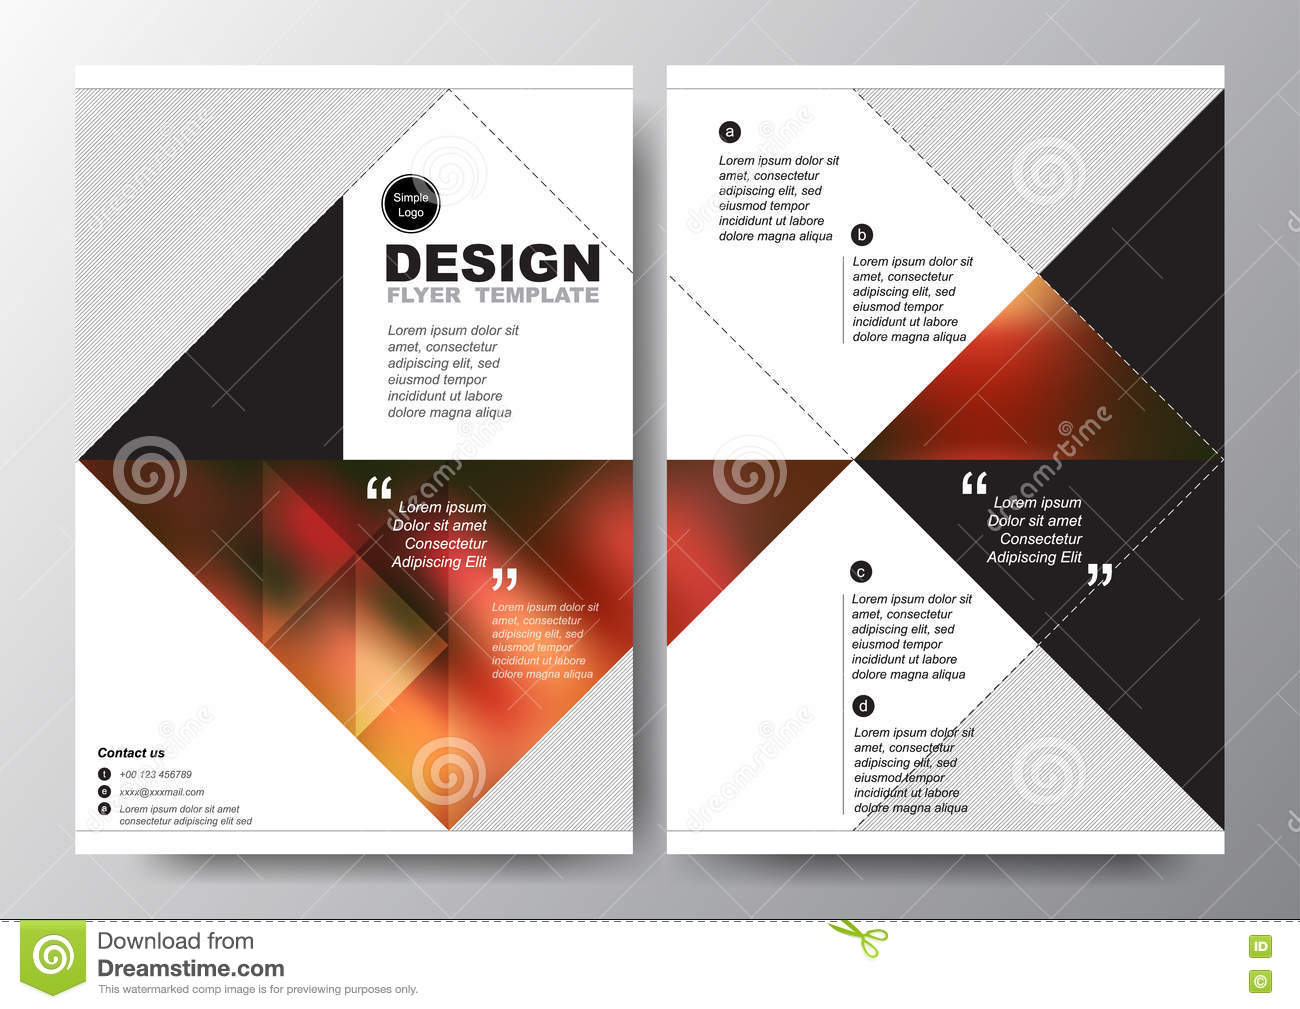 Poster design layout - Abstract Red Black Triangle Background For Minimal Poster Brochure Flyer Design Layout Vector Template In A4